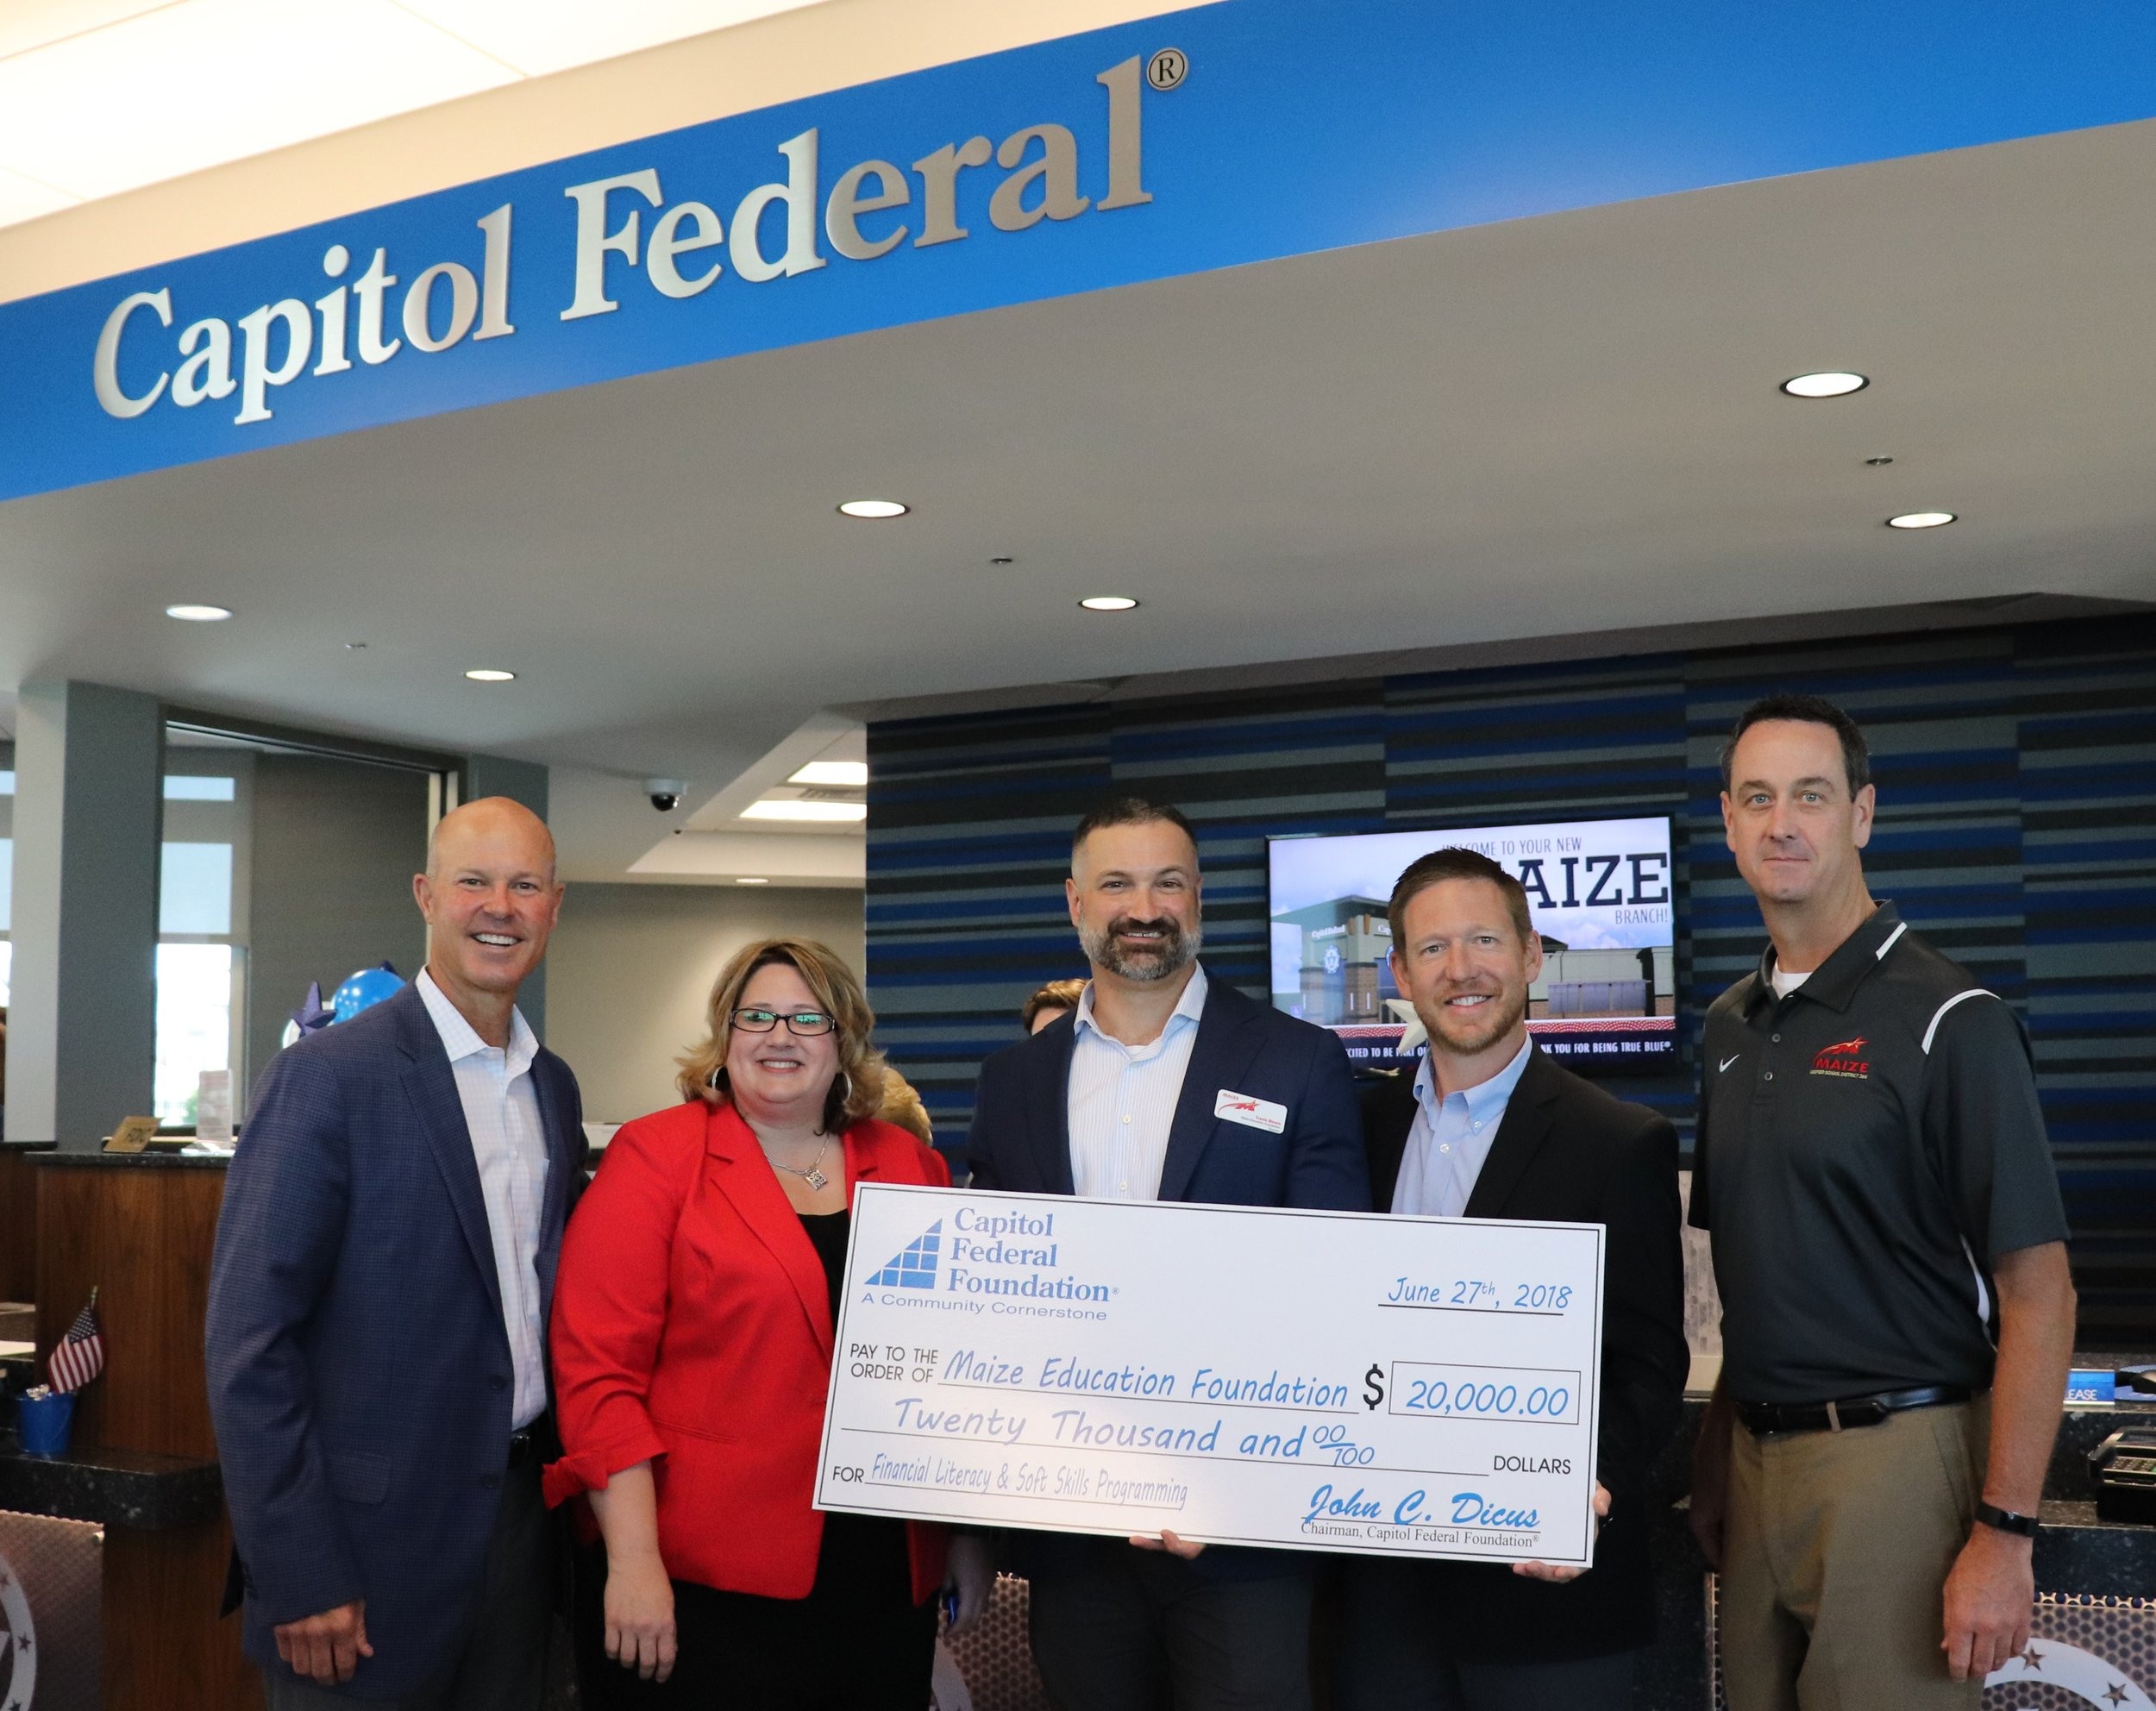 Pictured from left to right: Capitol Federal® CEO John Dicus, Capitol Federal® Branch Manager Jennifer Gorman,Travis Bloom,Maize Education Foundation Vice President Brandon Brungardt,and Maize Superintendent of Schools Dr. Chad Higgins.